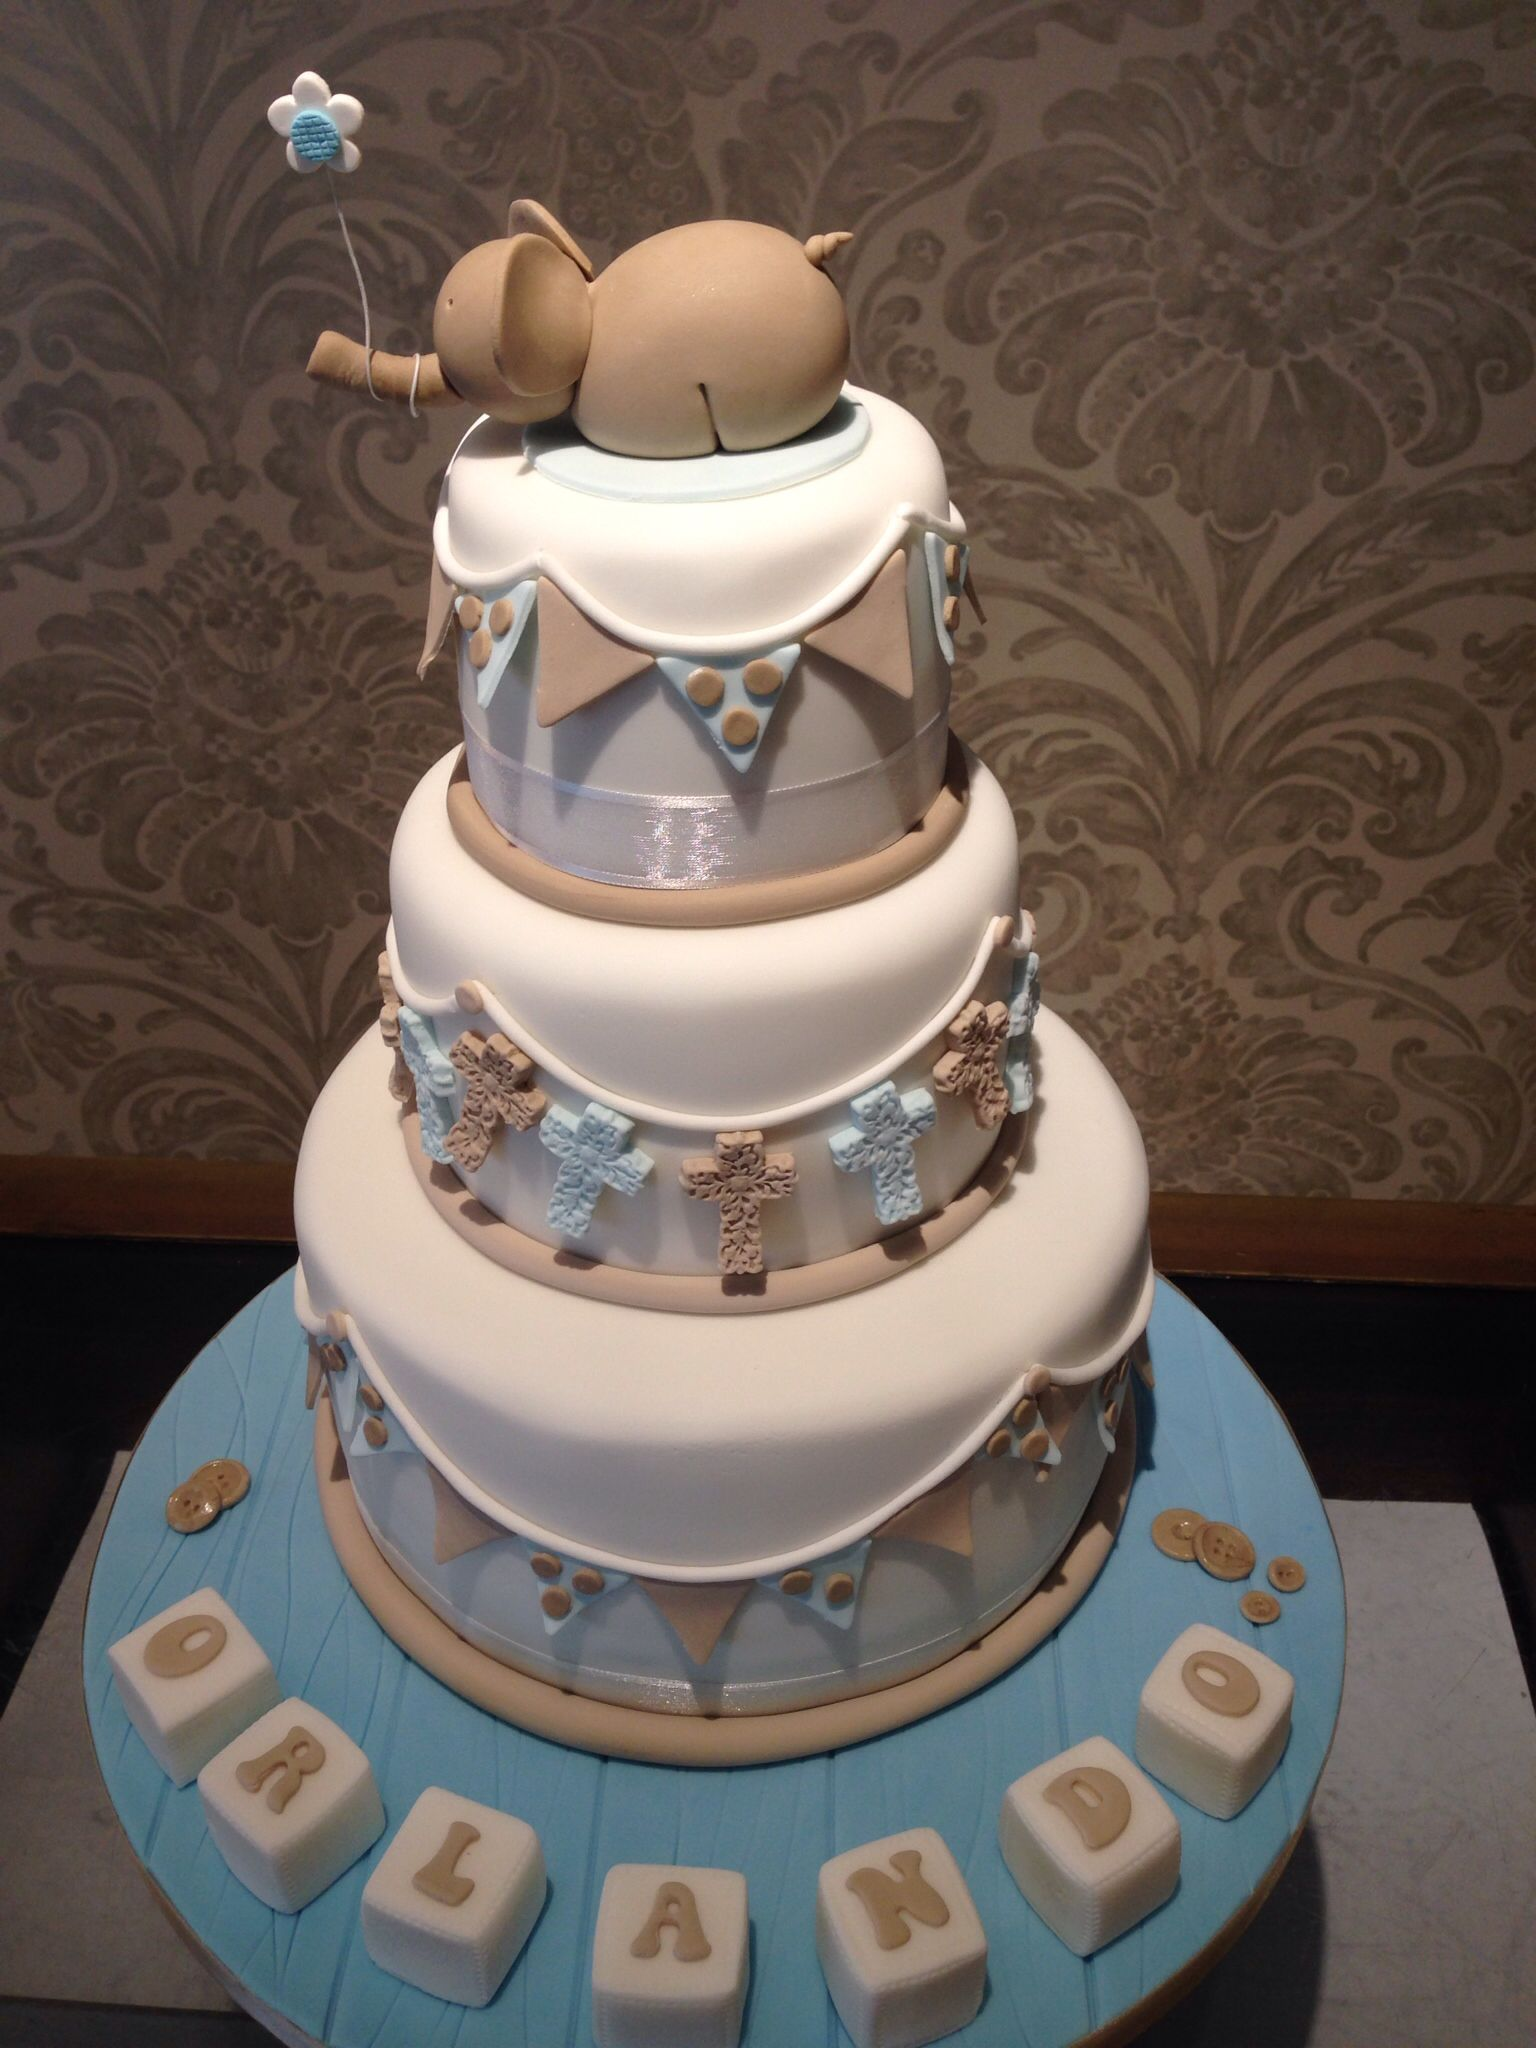 Beautiful baby boy christening cake christening cakes pinterest boys christening cakes - Baby baptism cake ideas ...